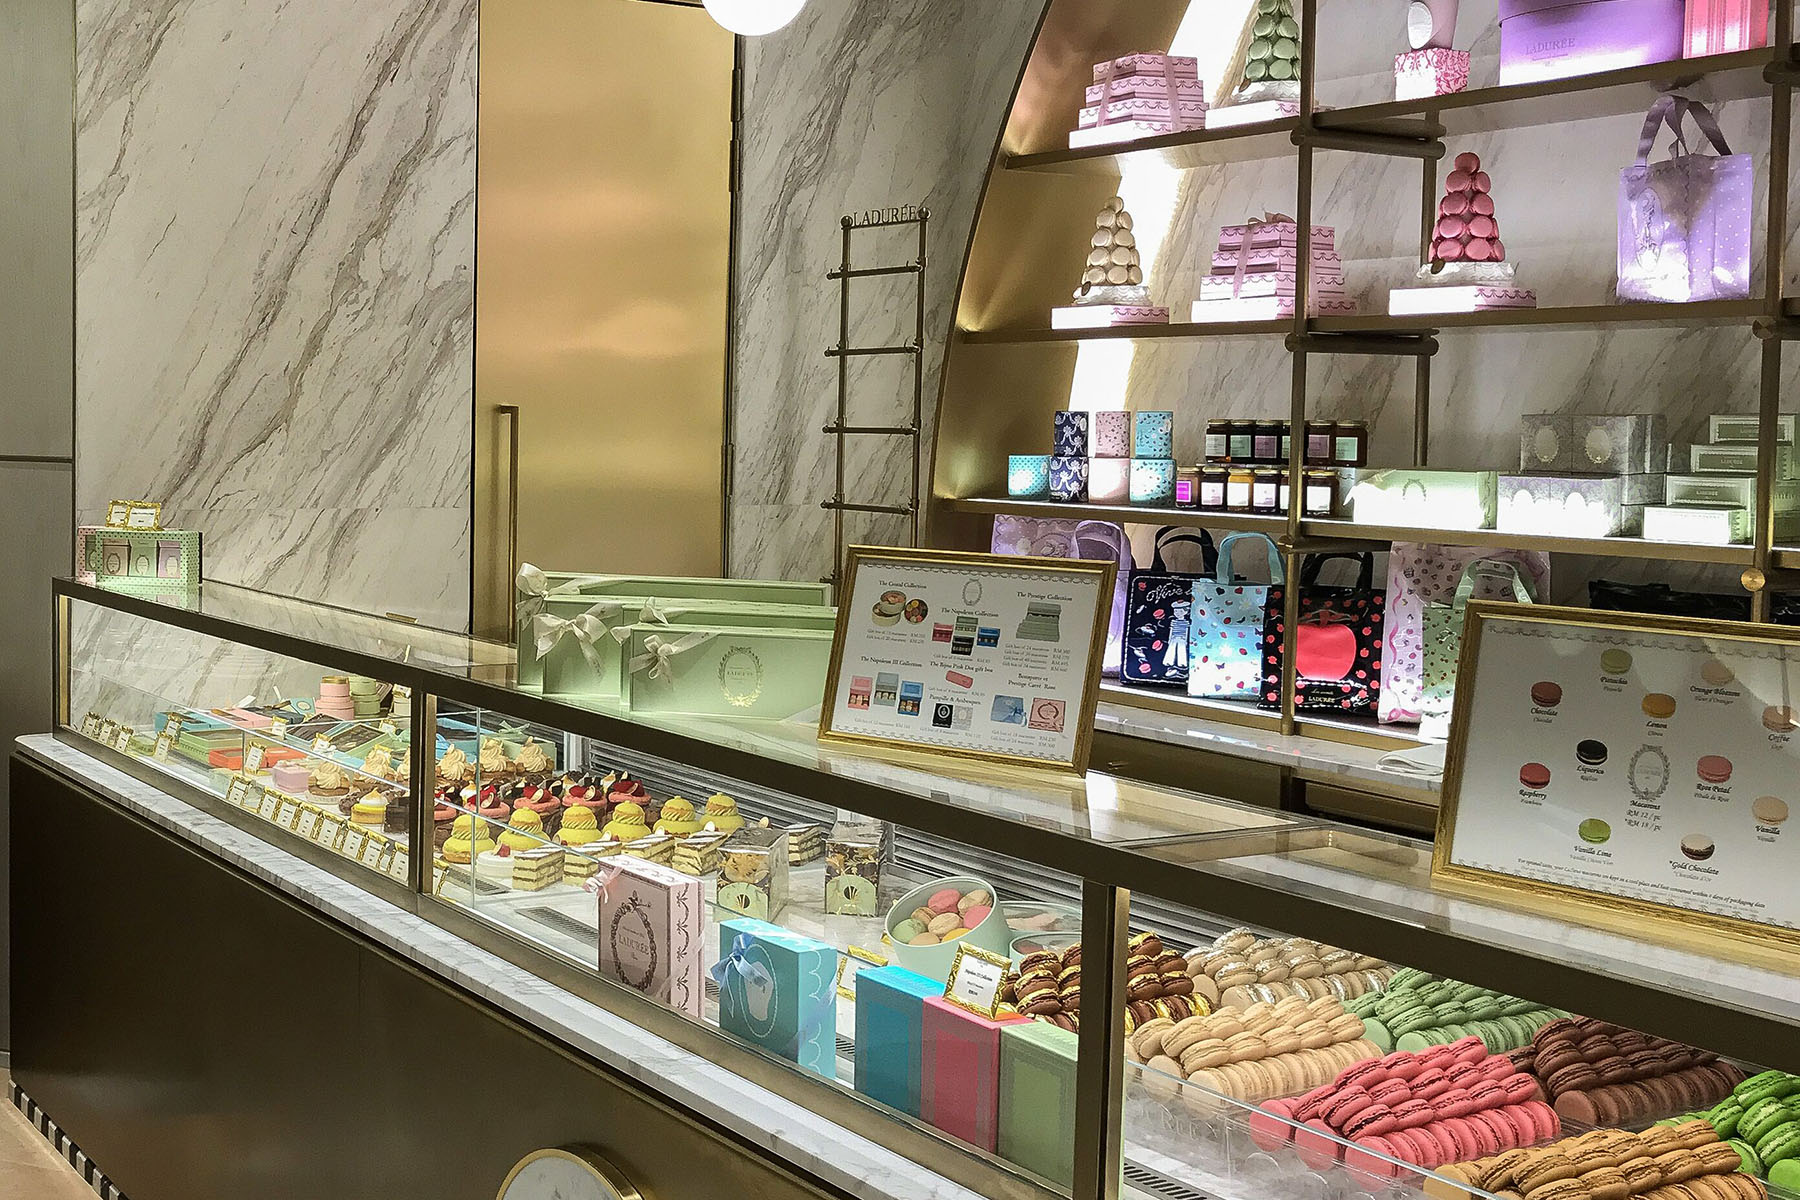 Ladurée Malaysia goes a notch further than just a tea salon